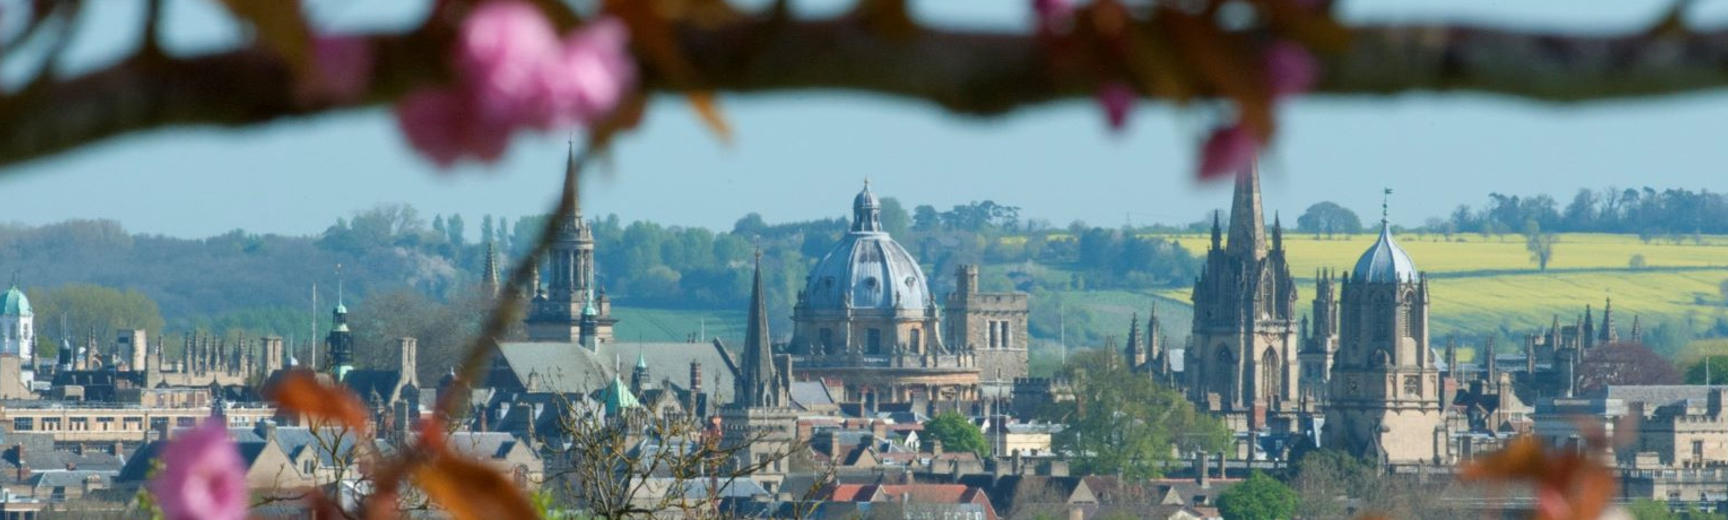 Oxford skyline from hill